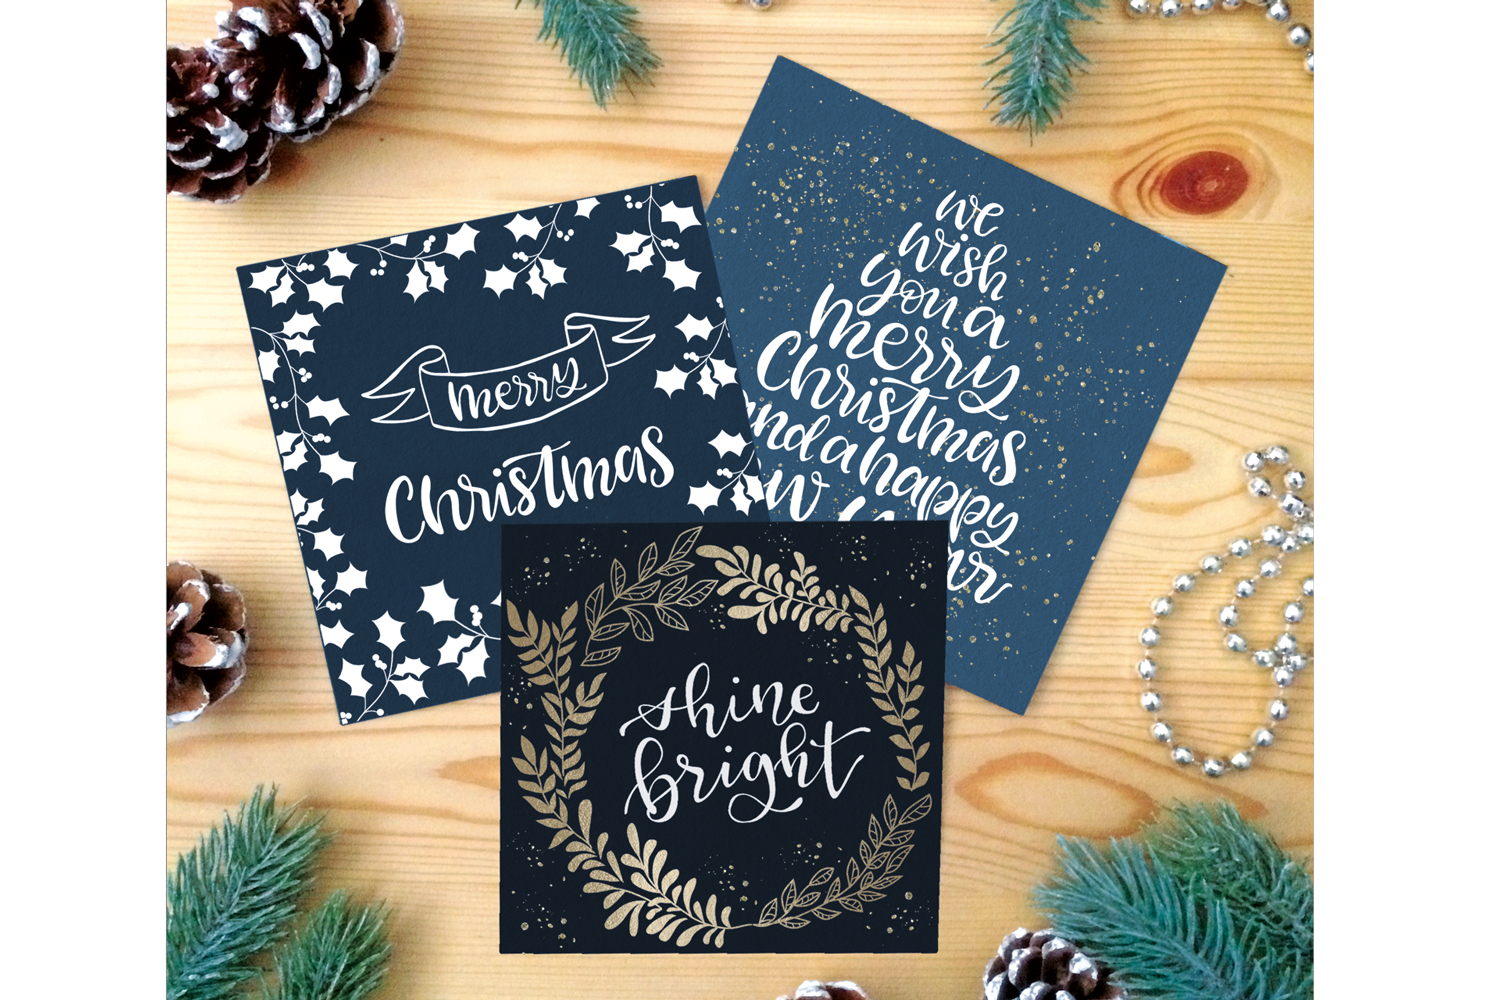 Christmas Collection - words, illustrations, ornaments example image 5